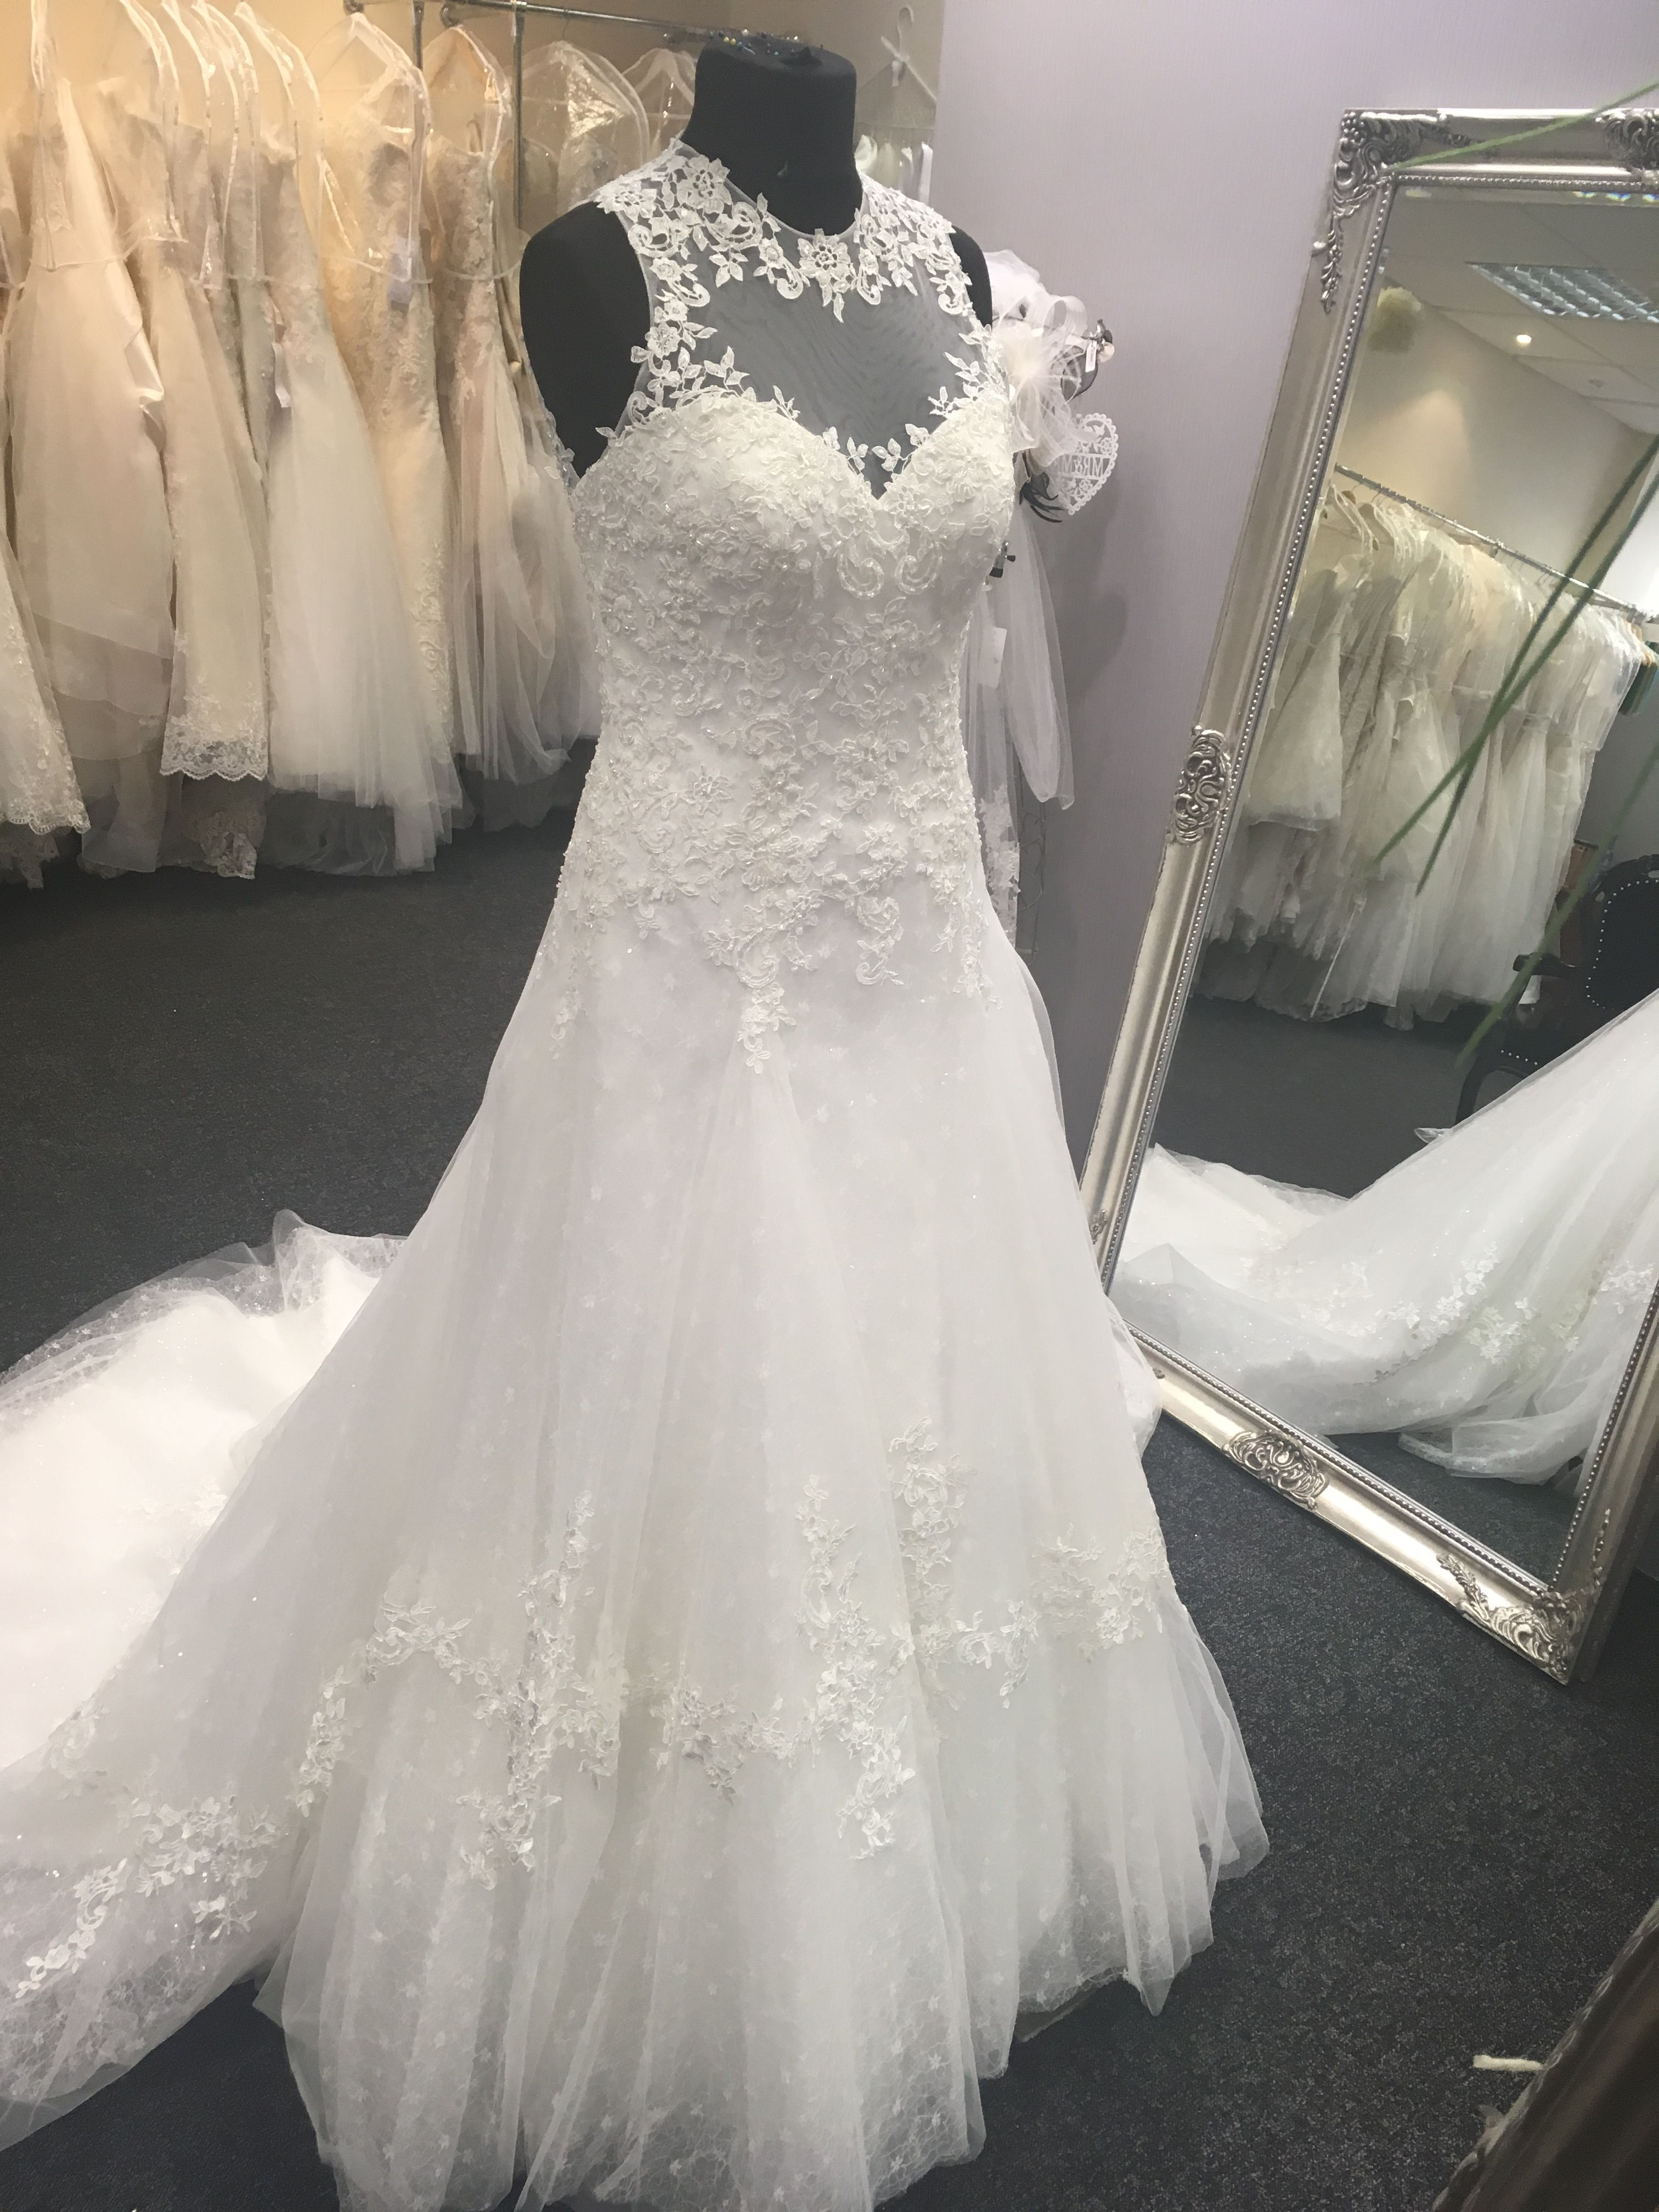 Pin By Heavenly Wedding Belles Bridal On Wedding Dresses Wedding Dresses Dresses Wedding Dresses Lace